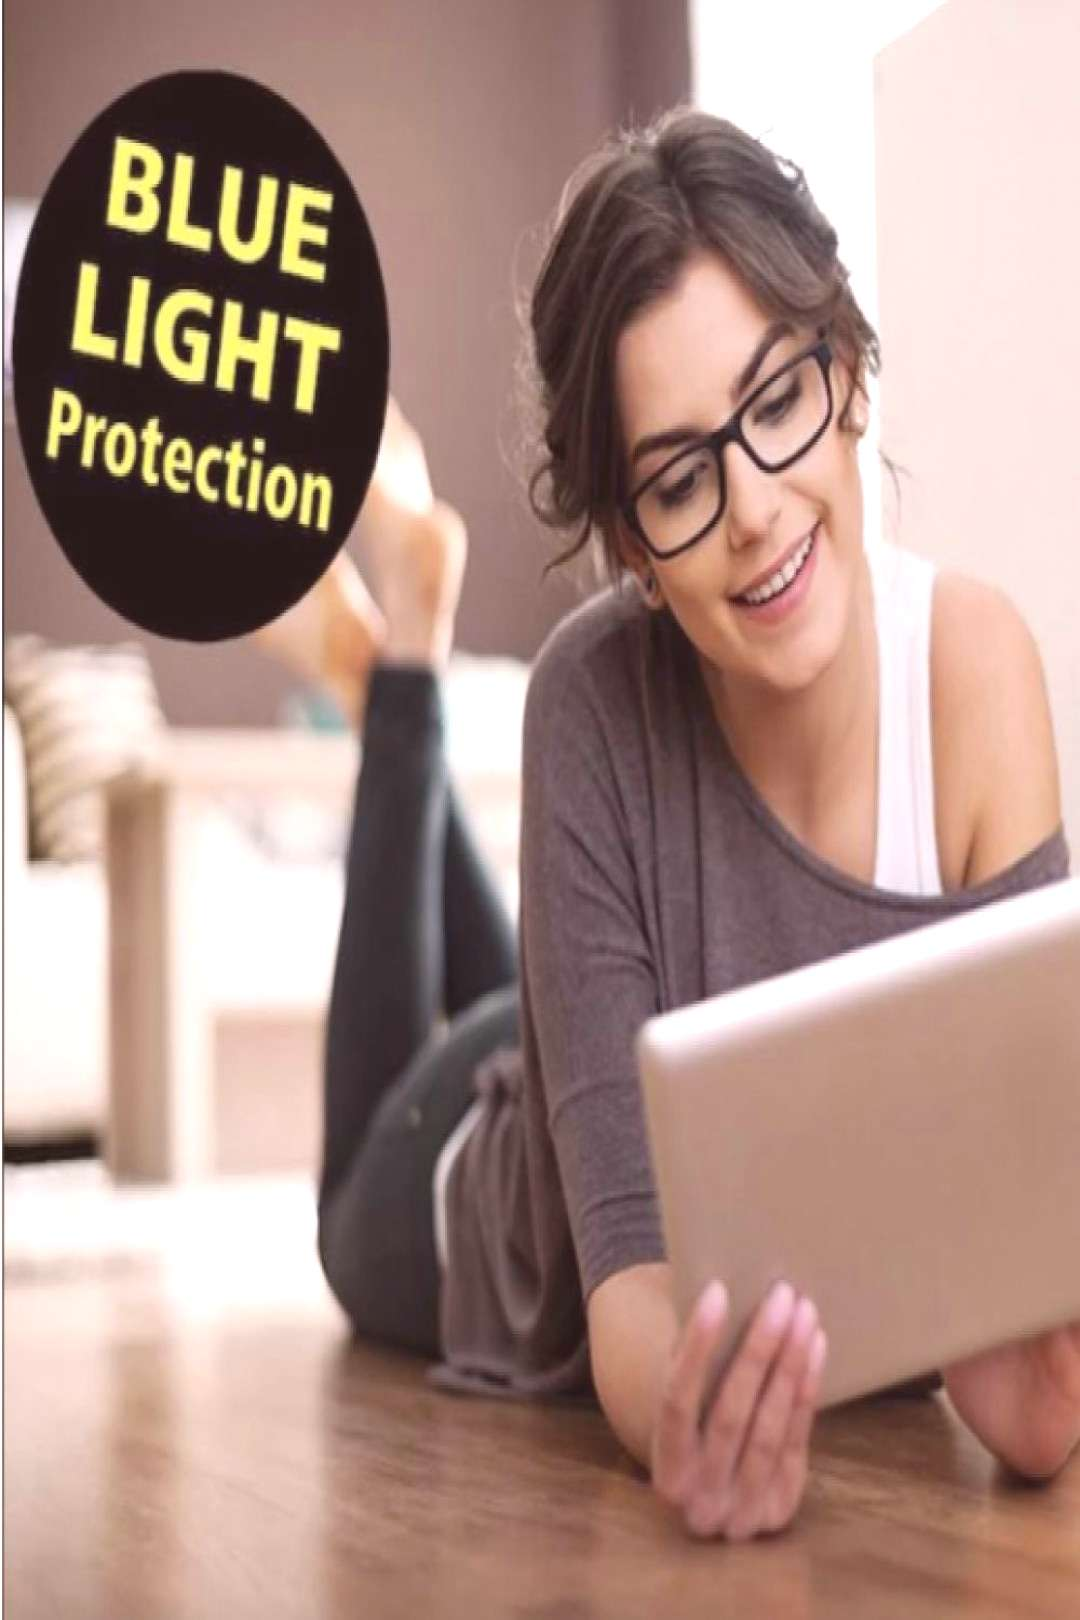 Blue Light Blocking Glasses  Price: $ 19.00 & FREE Shipping